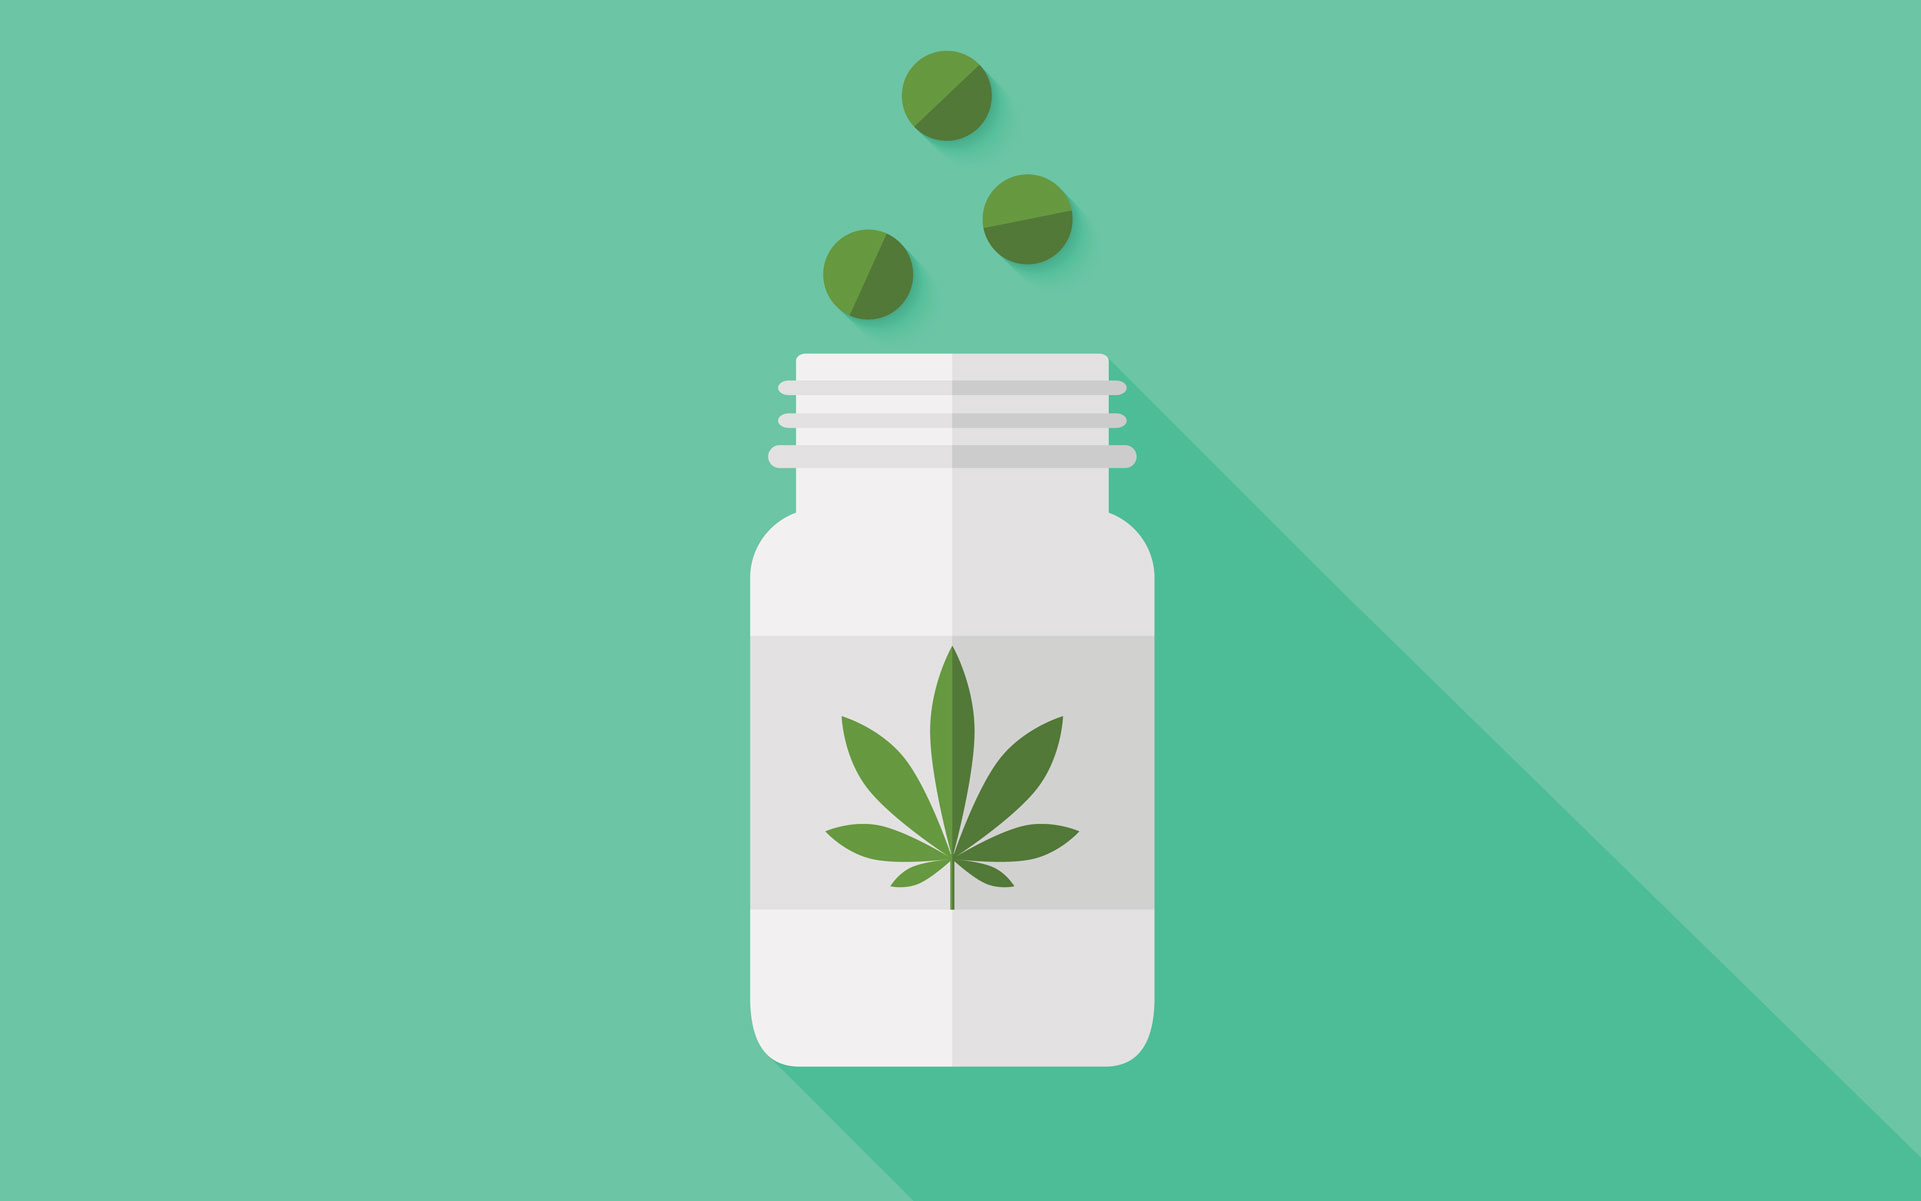 louisiana medical cannabis available - header image